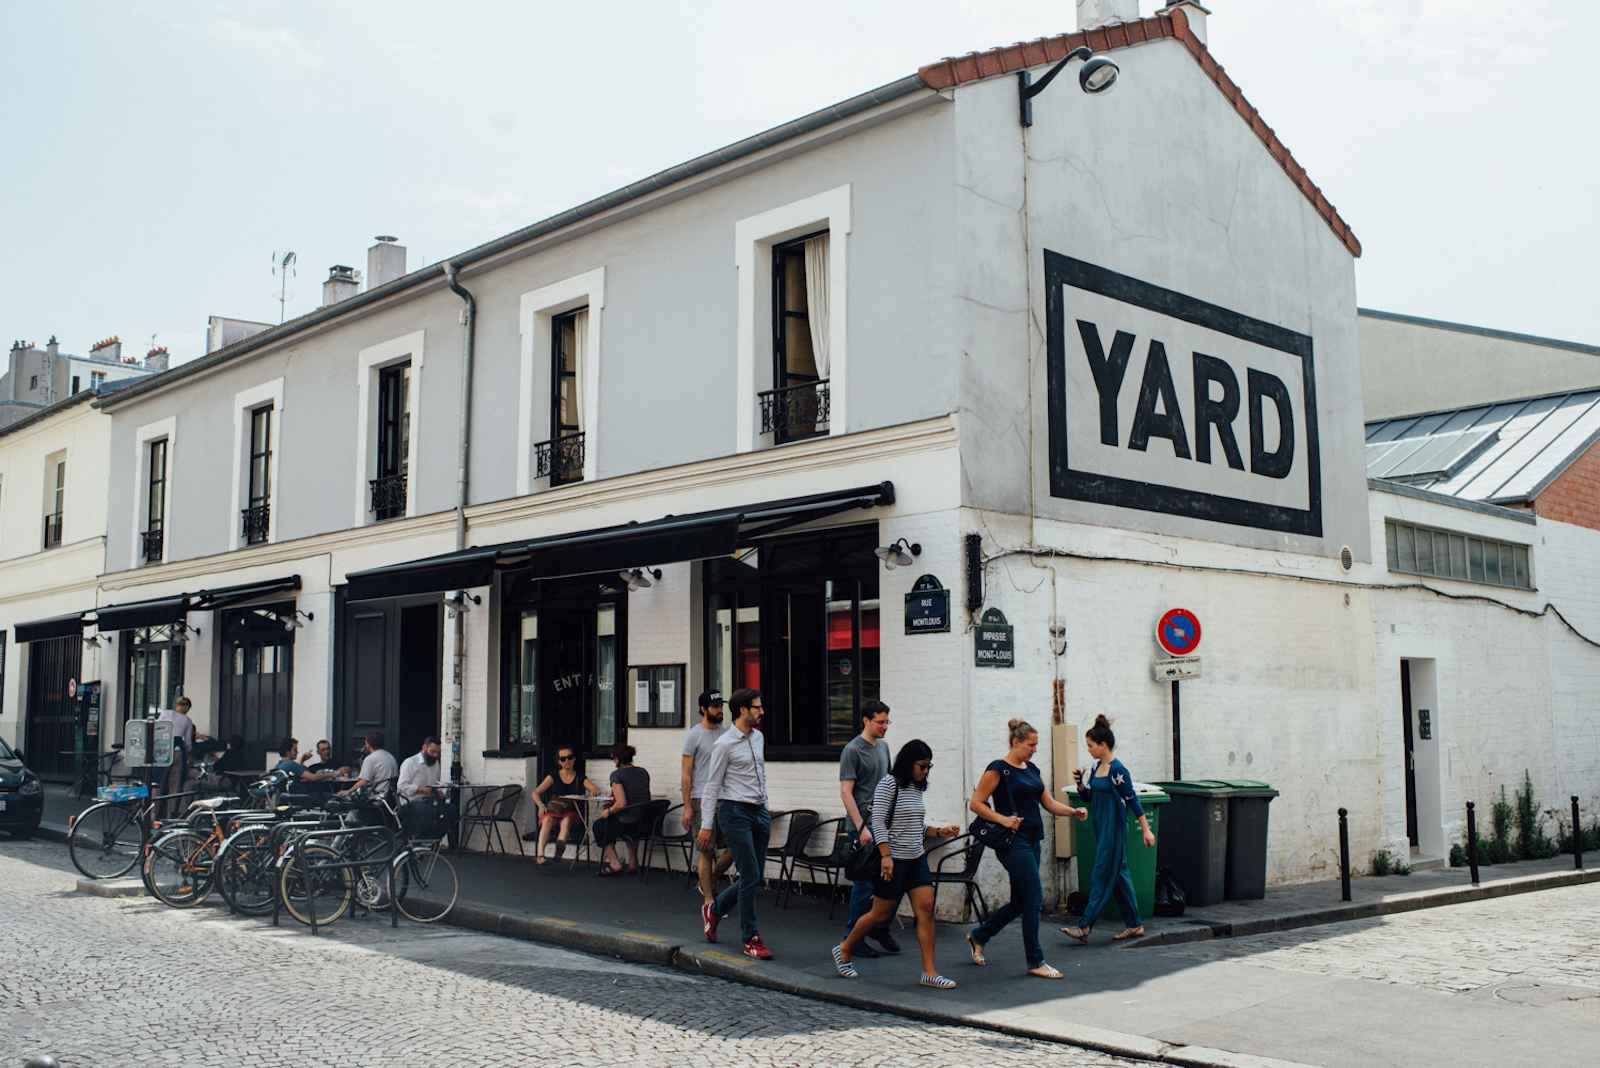 Yard Restaurant in Paris' 11th Arrondissement